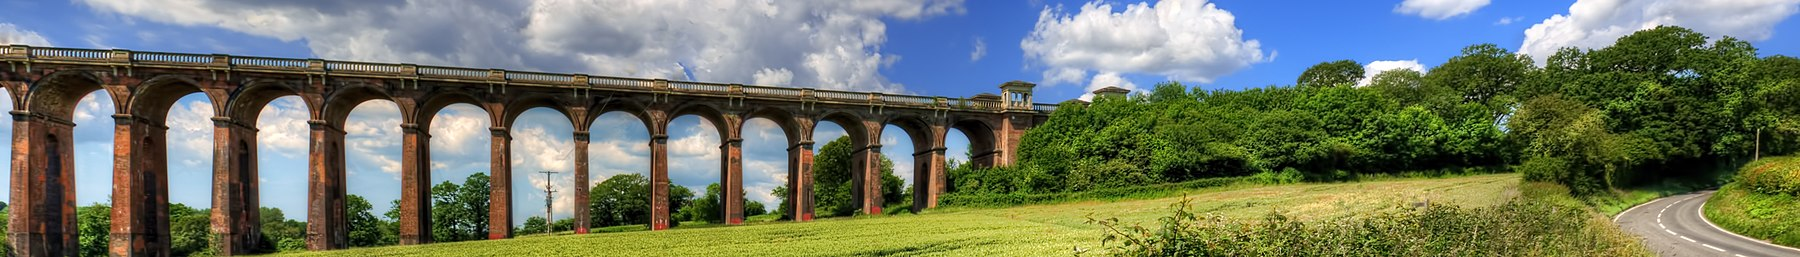 The Balcombe Railway Viaduct, near Balcombe, West Sussex